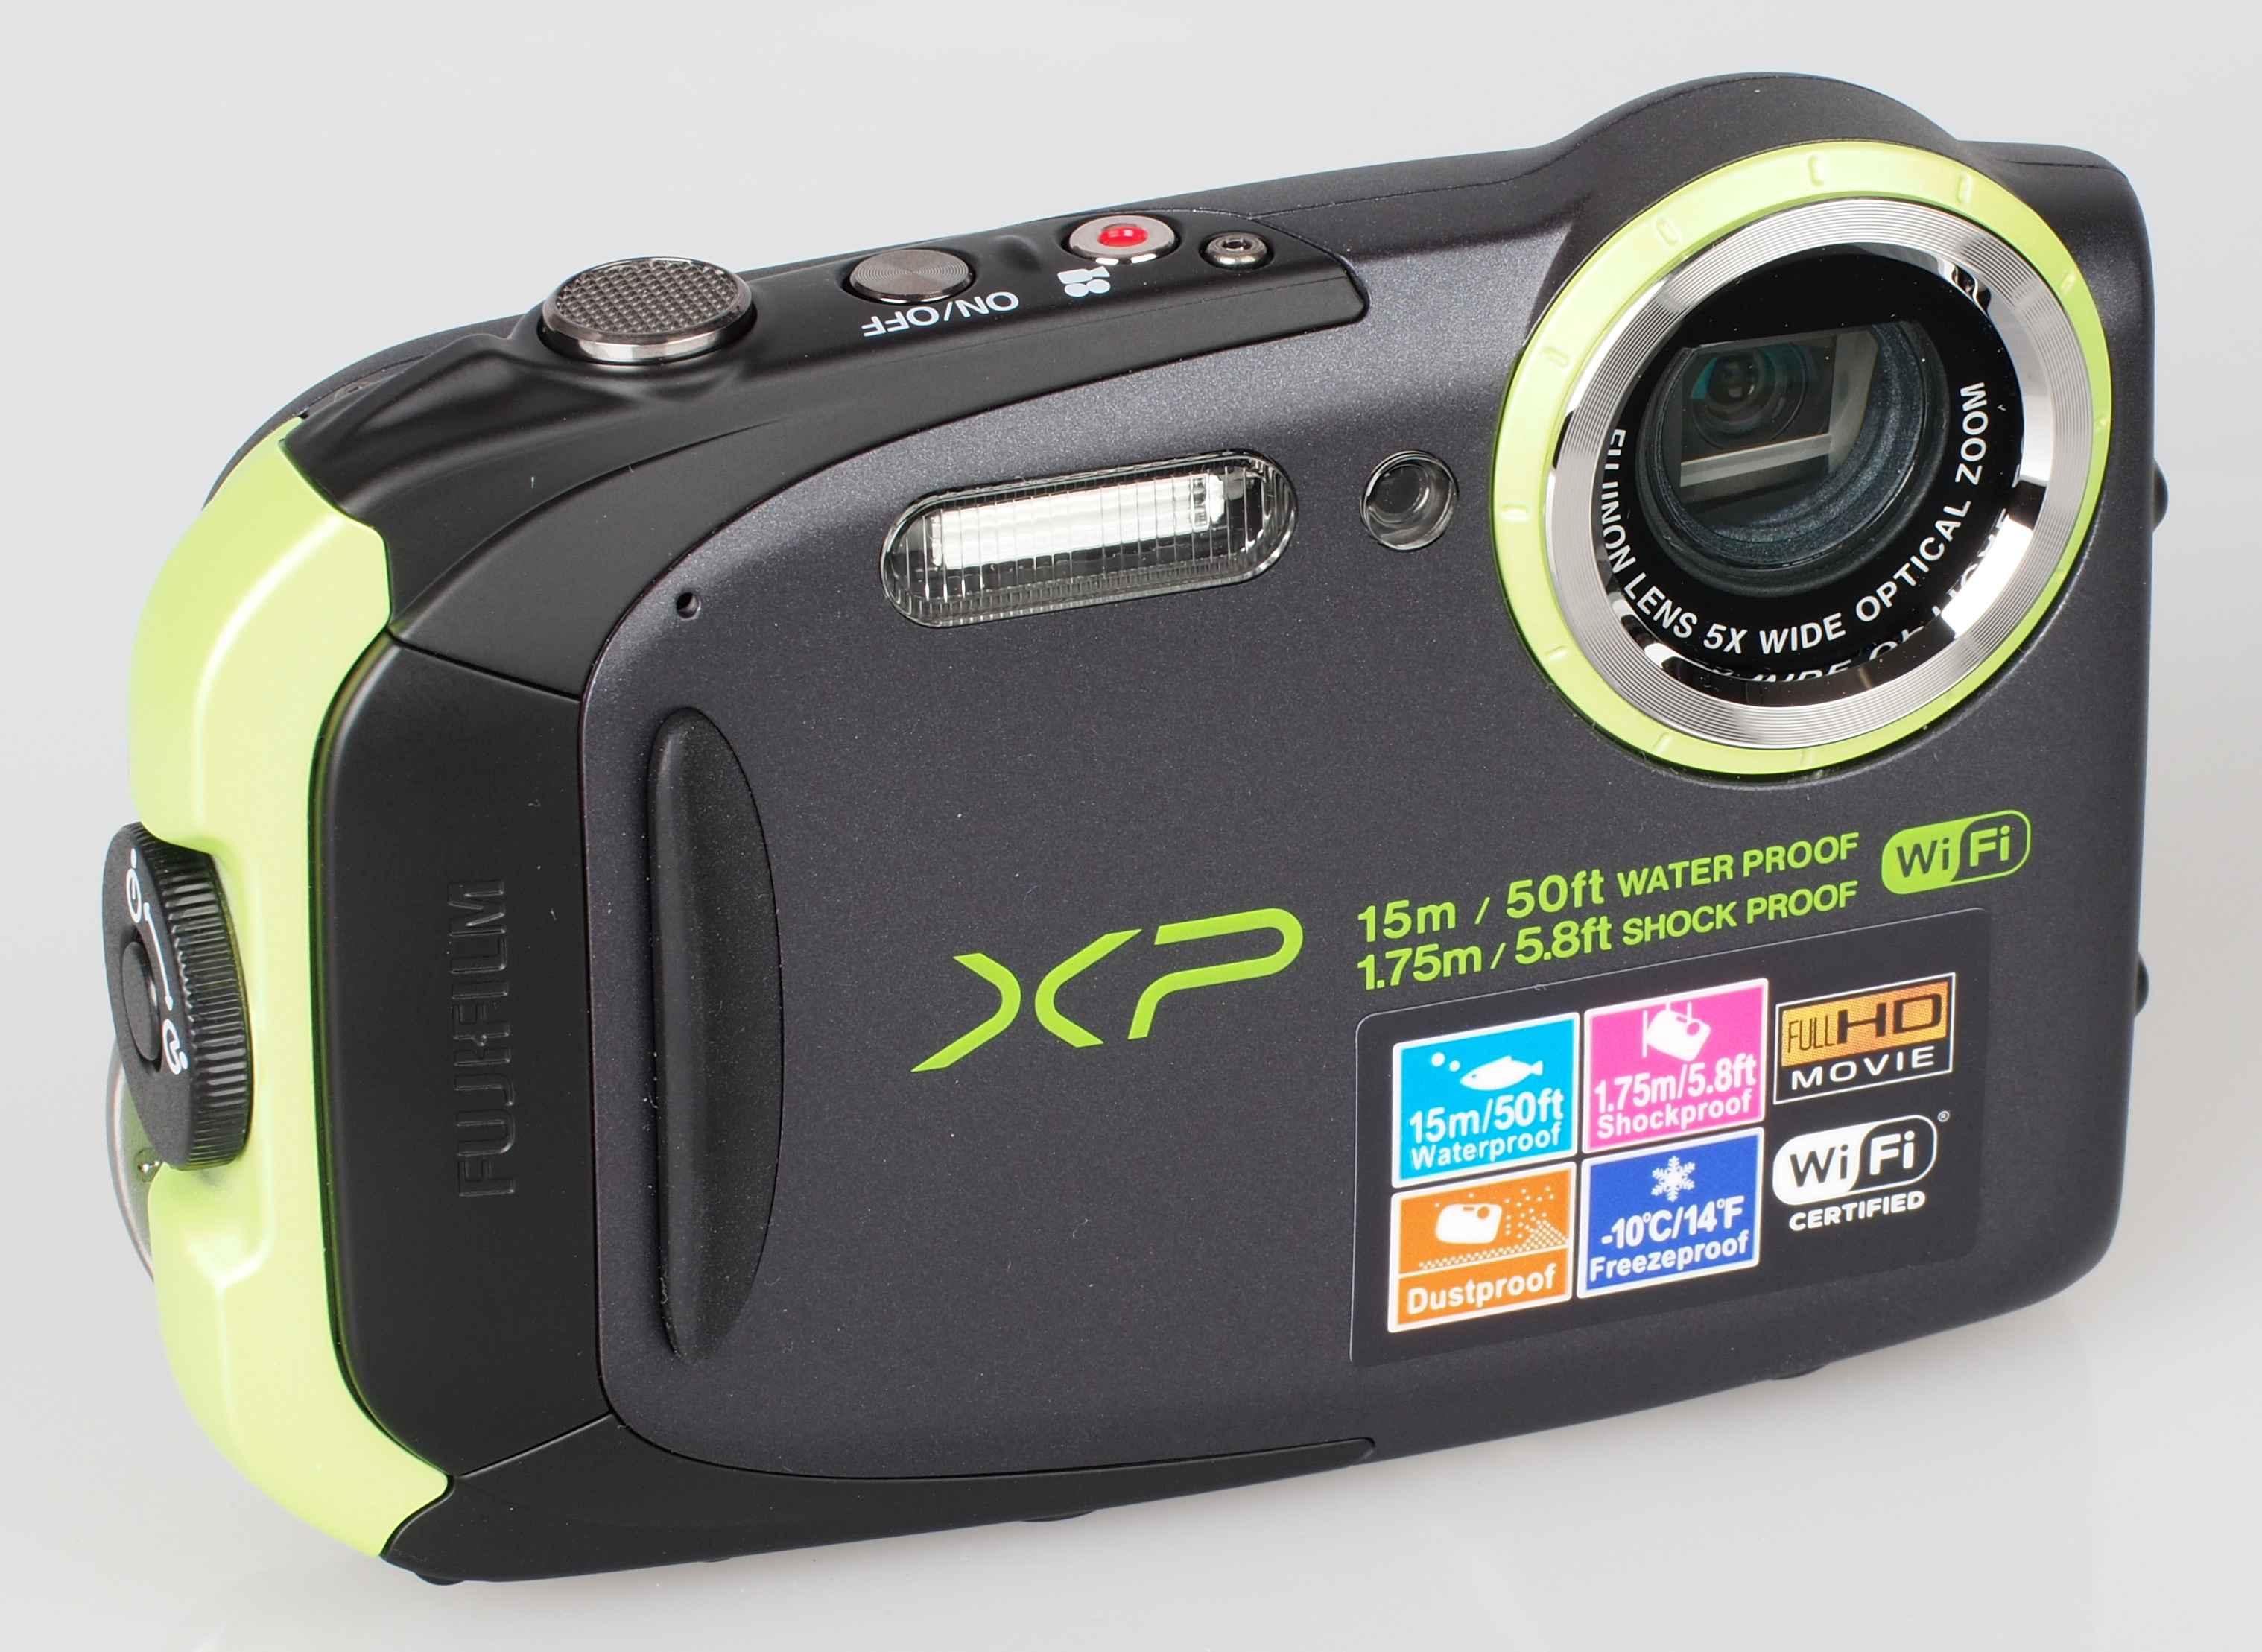 FUJIFILM FINEPIX XP80 CAMERA DRIVER FOR MAC